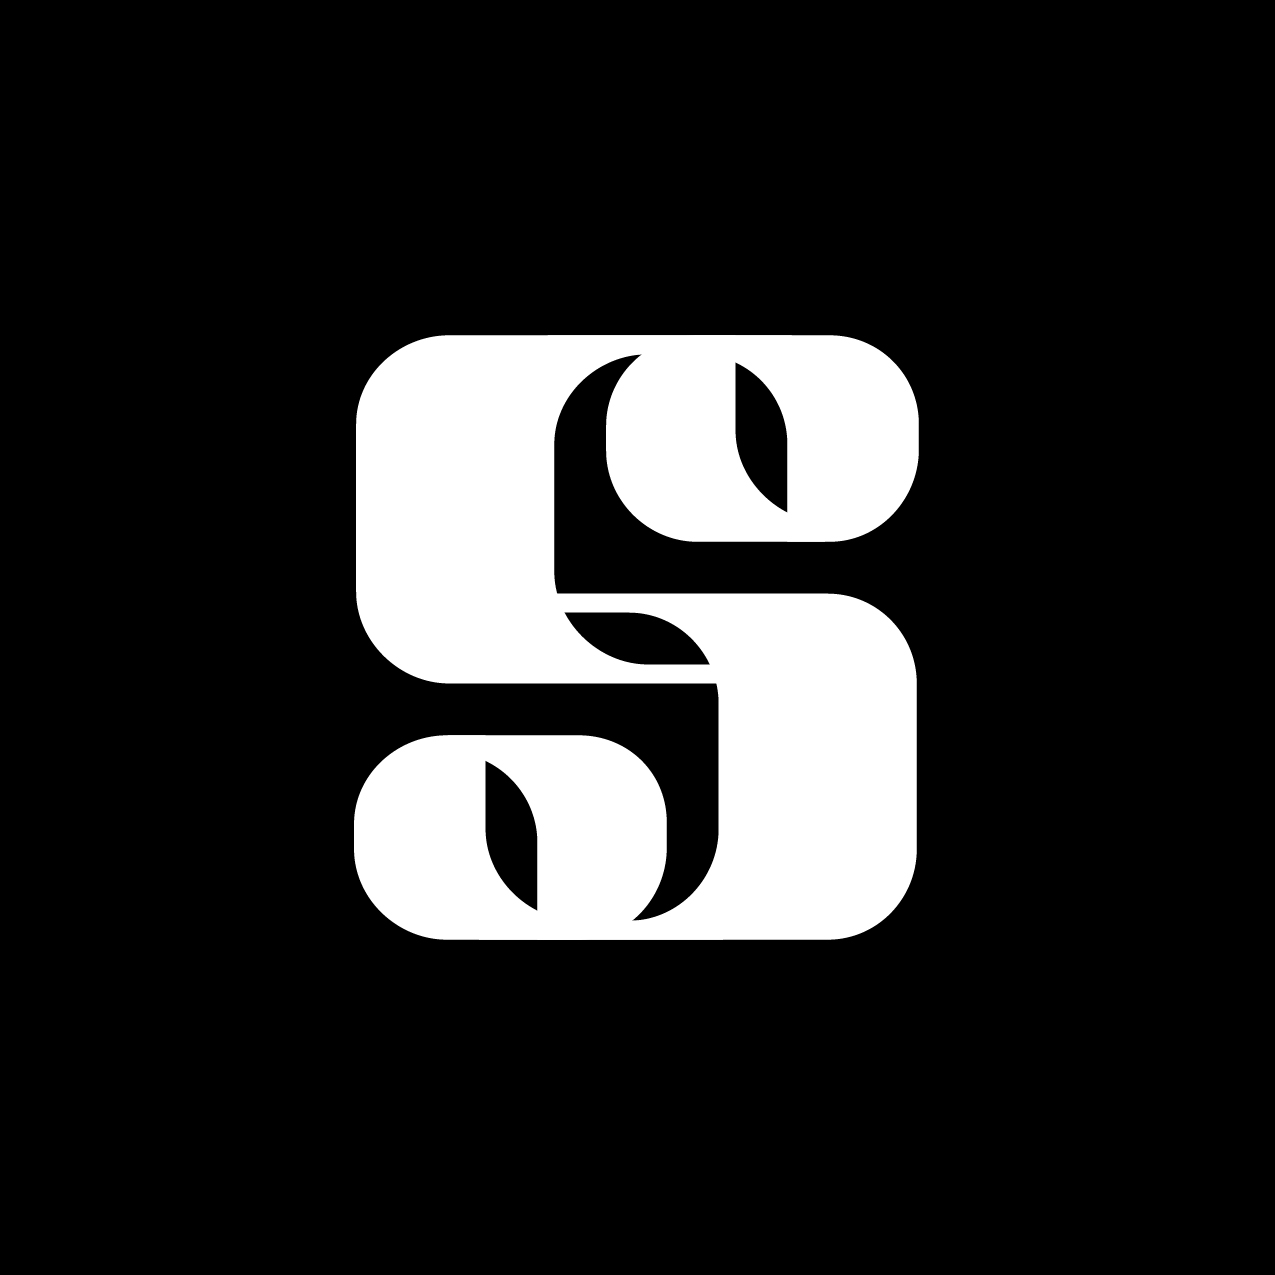 Letter S4 Design by Furia